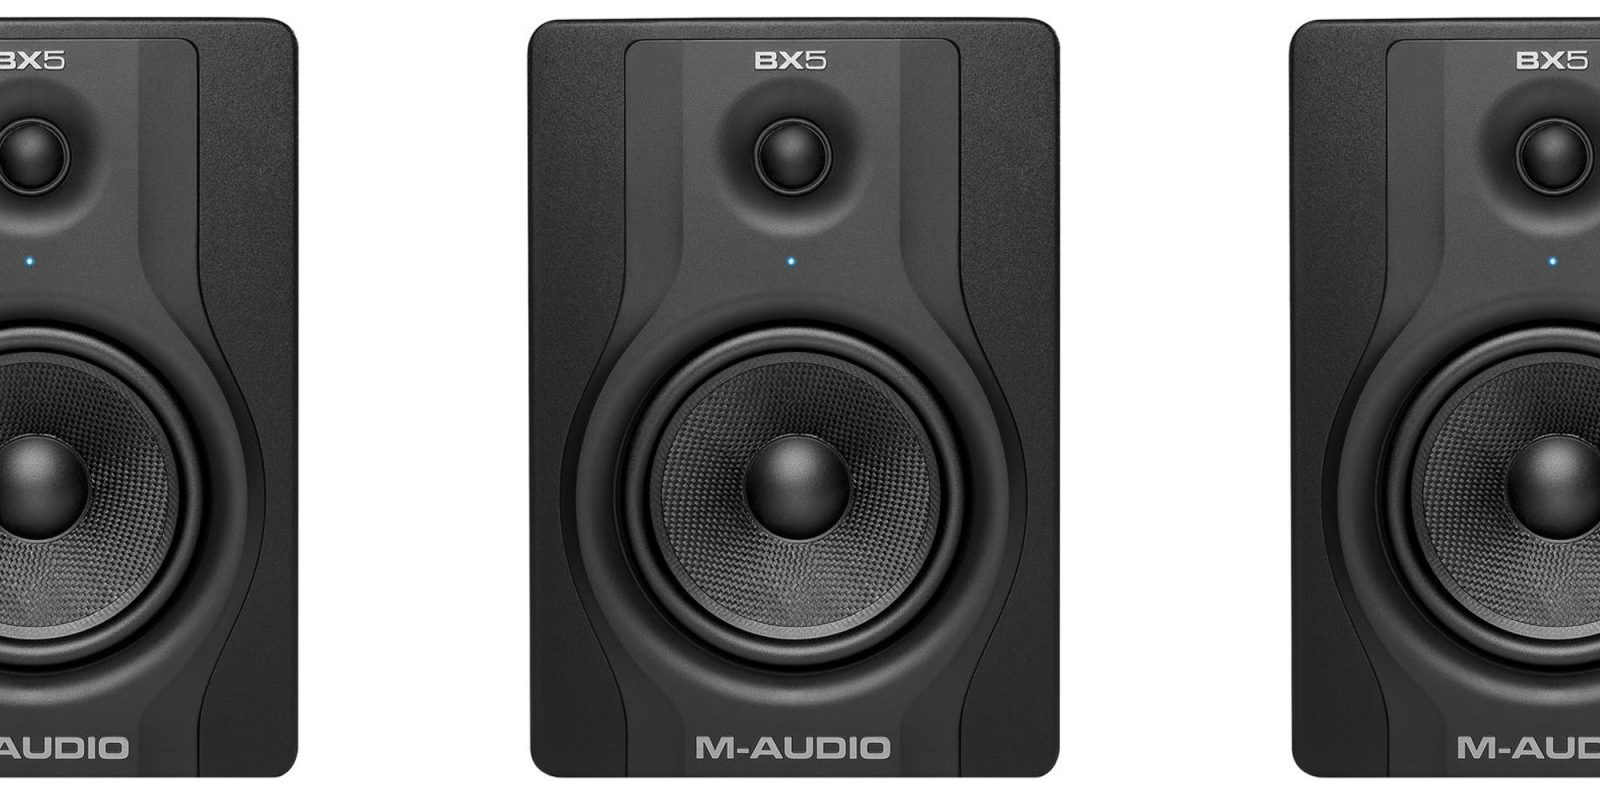 M-Audio's BX5 Active Studio Monitor drops to $75 shipped, today only